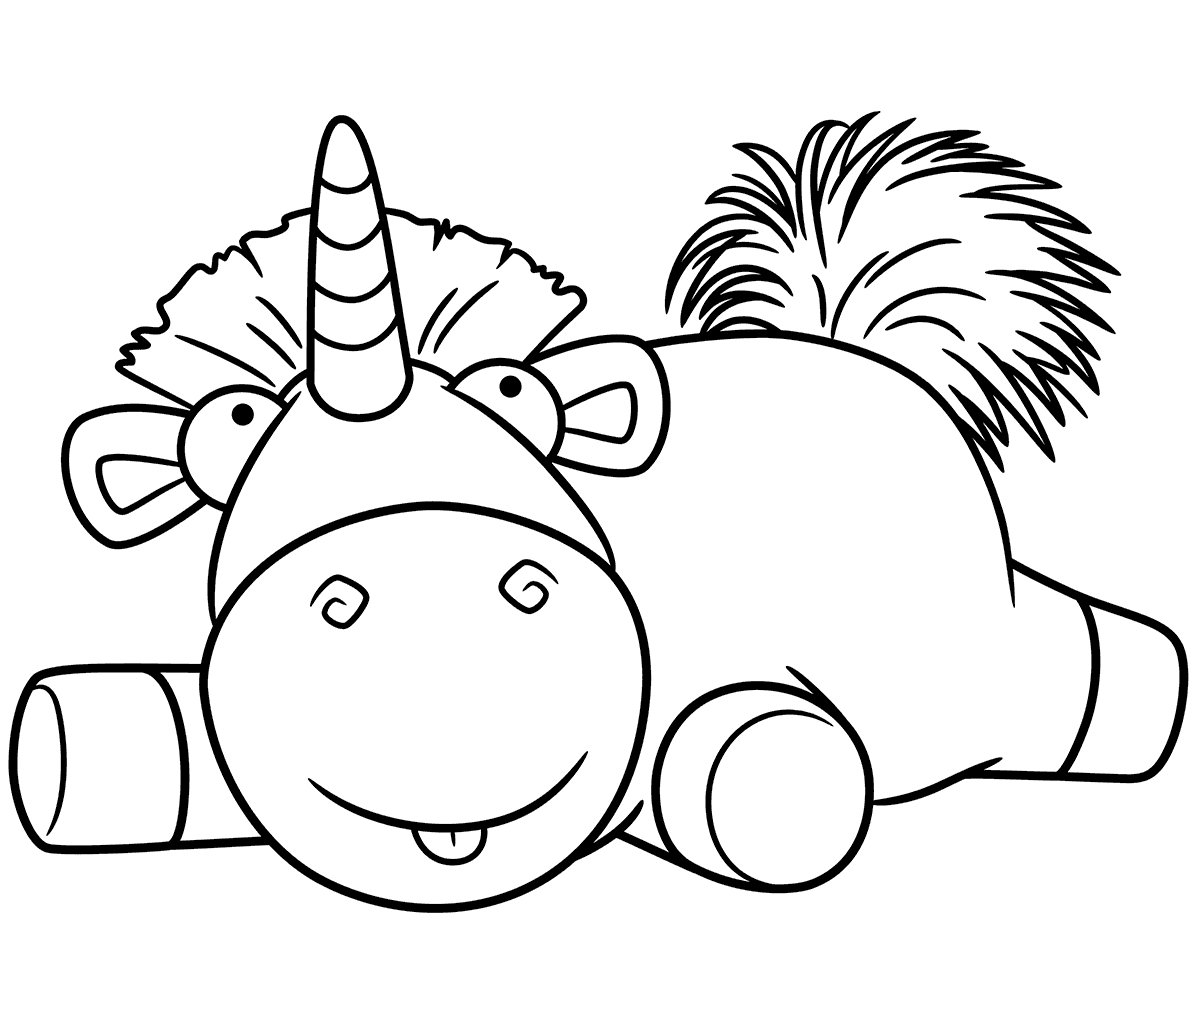 despicable me 3 coloring pages - gru coloring page